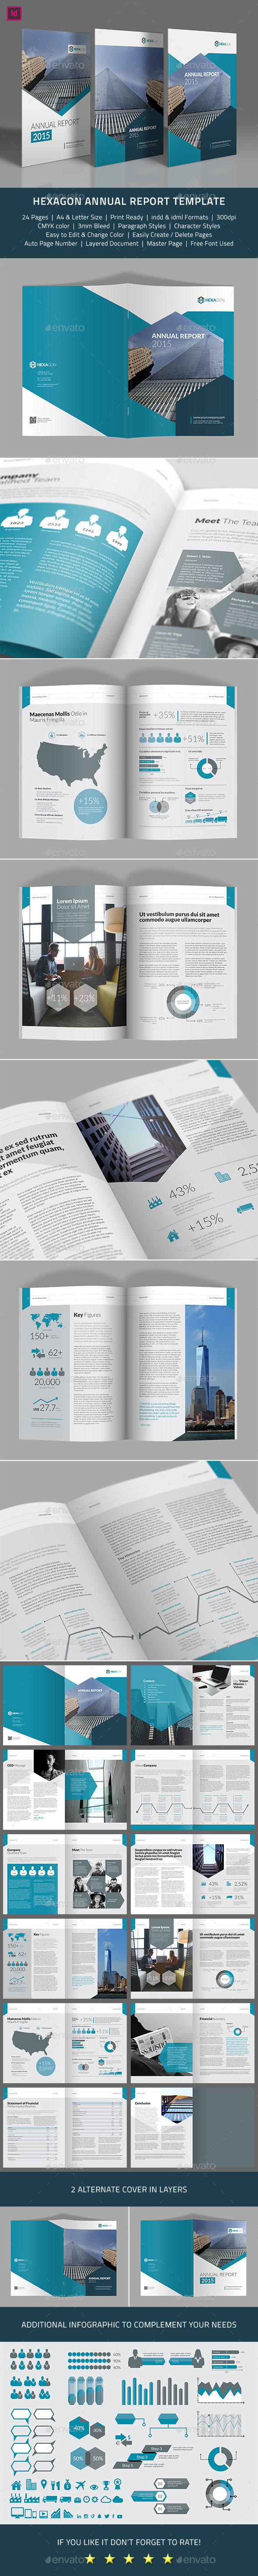 Hexagon Annual Report Template - Corporate Brochures